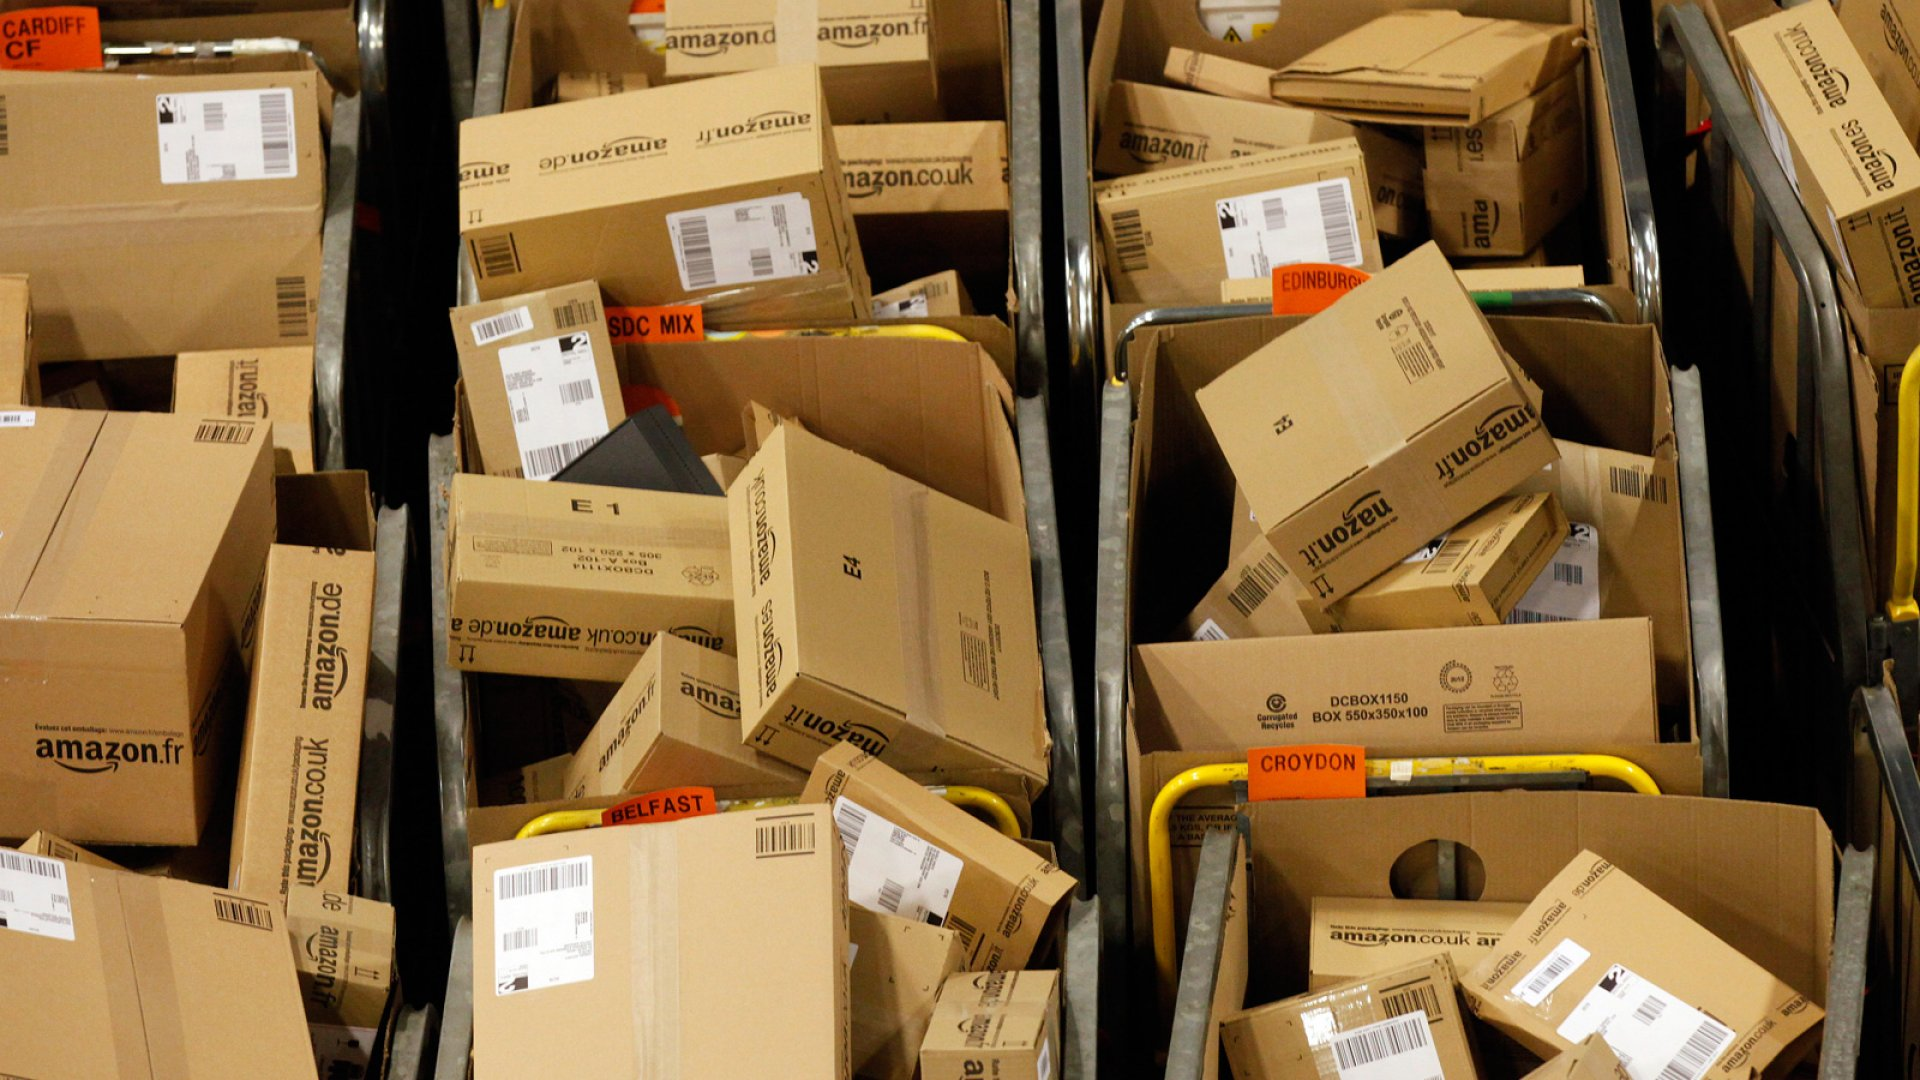 Check out Amazon's Clever Strategy for Brainstorming Brilliant Ideas